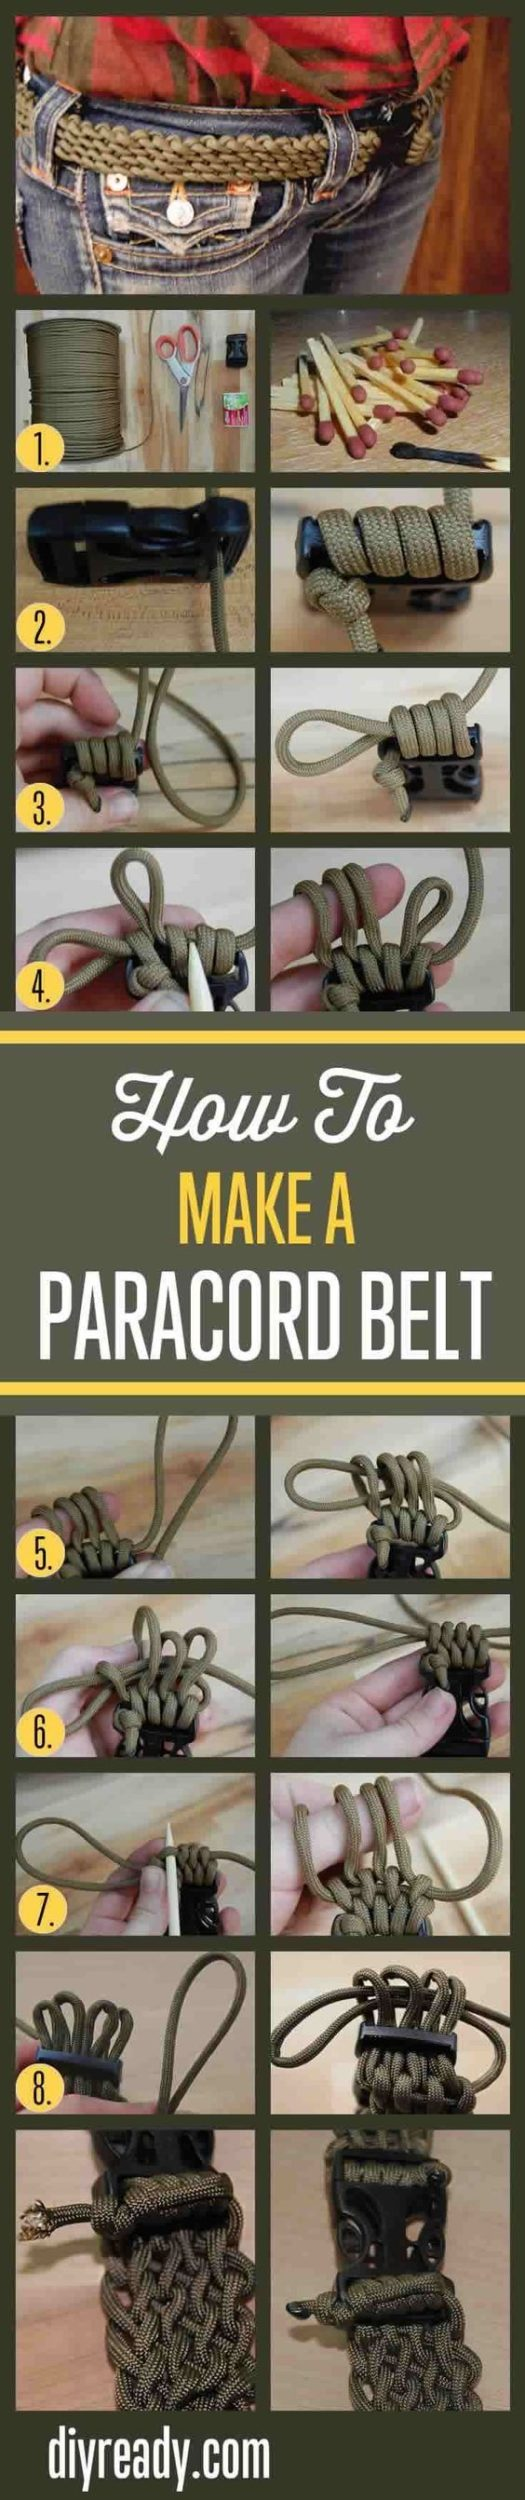 Funny And Easy Step By Step Tutorials To DIY A Belt For Every Occasion